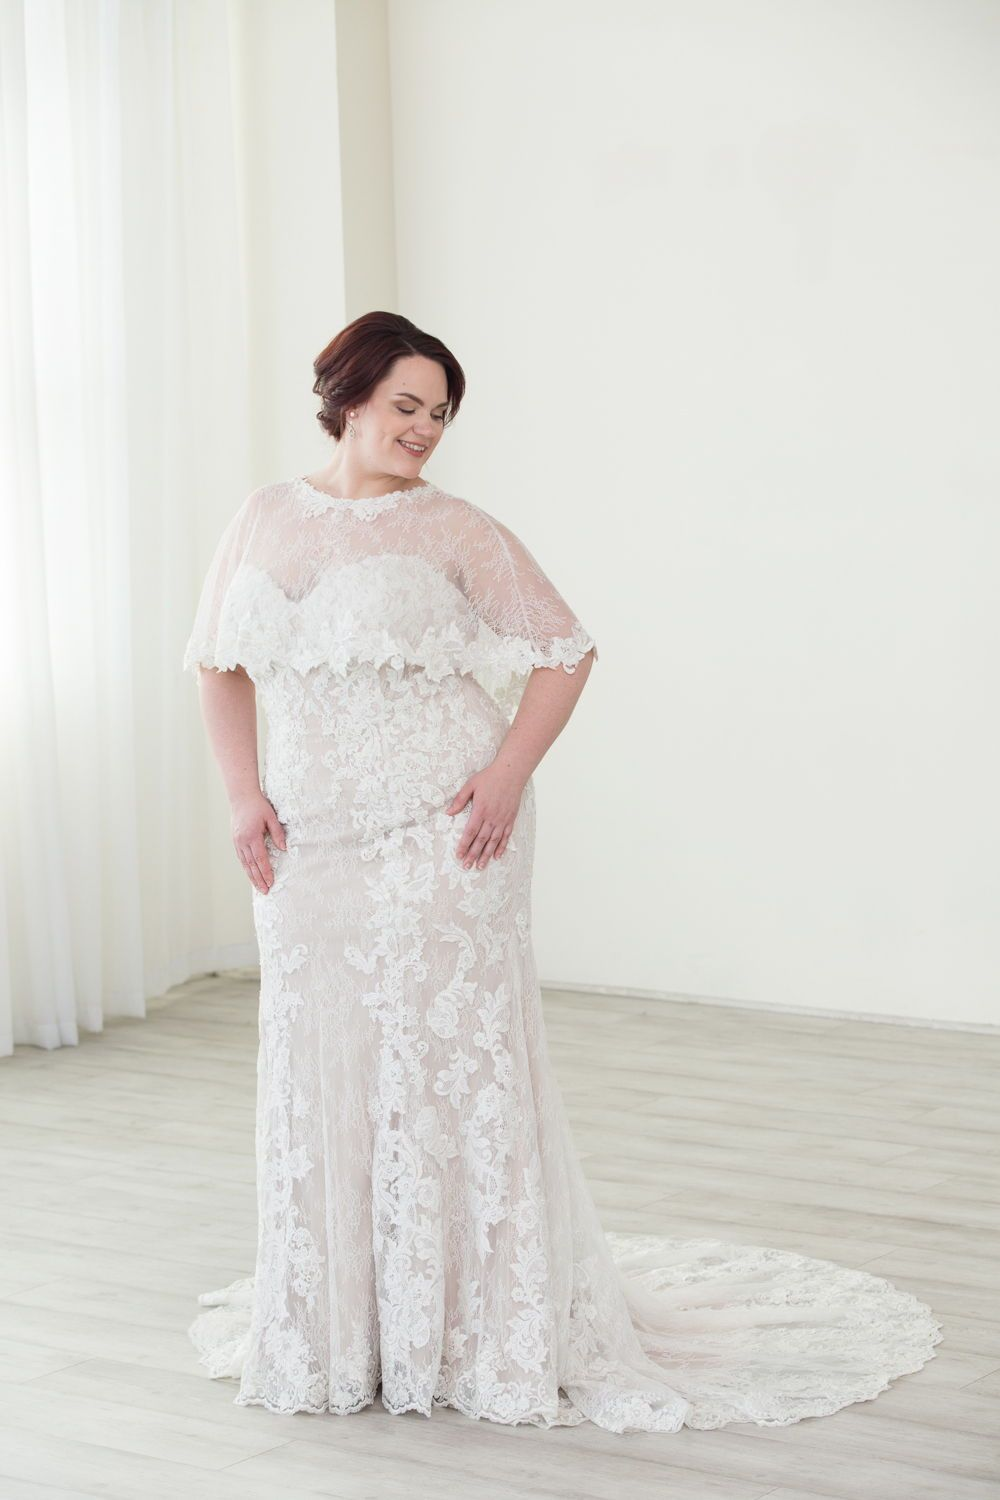 8725f0be0da Gorgeous fitted plus size wedding dress. Strapless lace wedding dress with  a capelet. Winter vibes in this plus size wedding gown from Justin  Alexander.